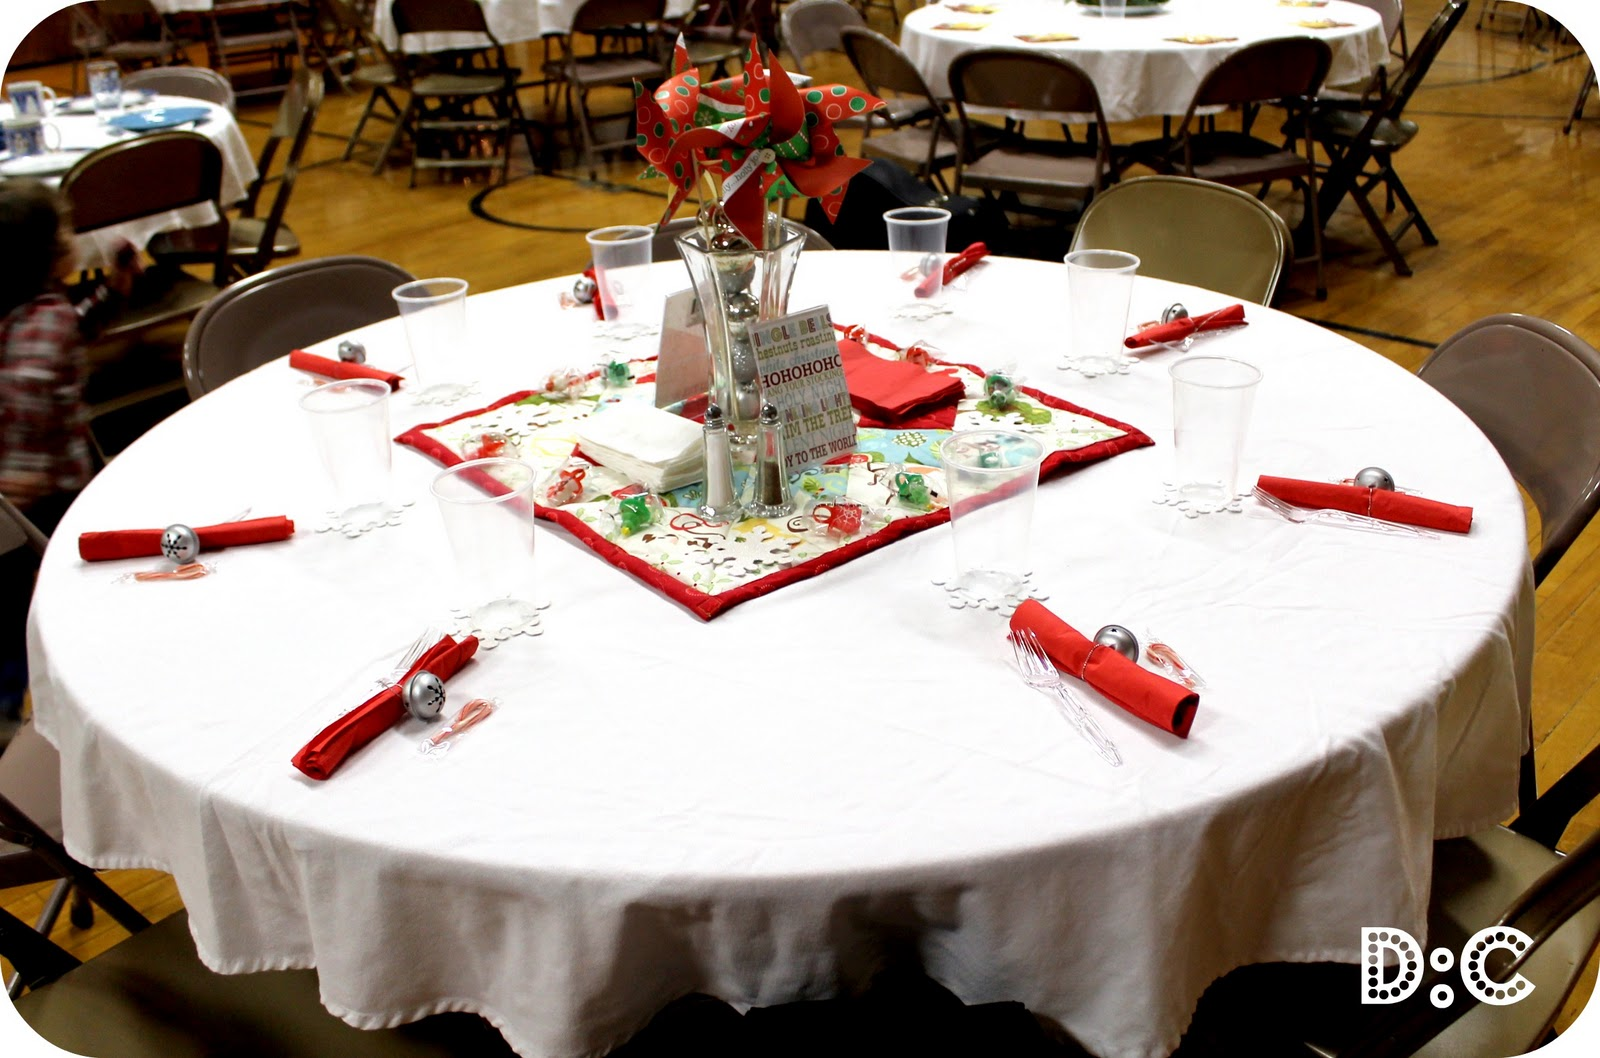 Christmas Party Table Decorations Ideas.Destination Craft Christmas Party Table Christmas Party